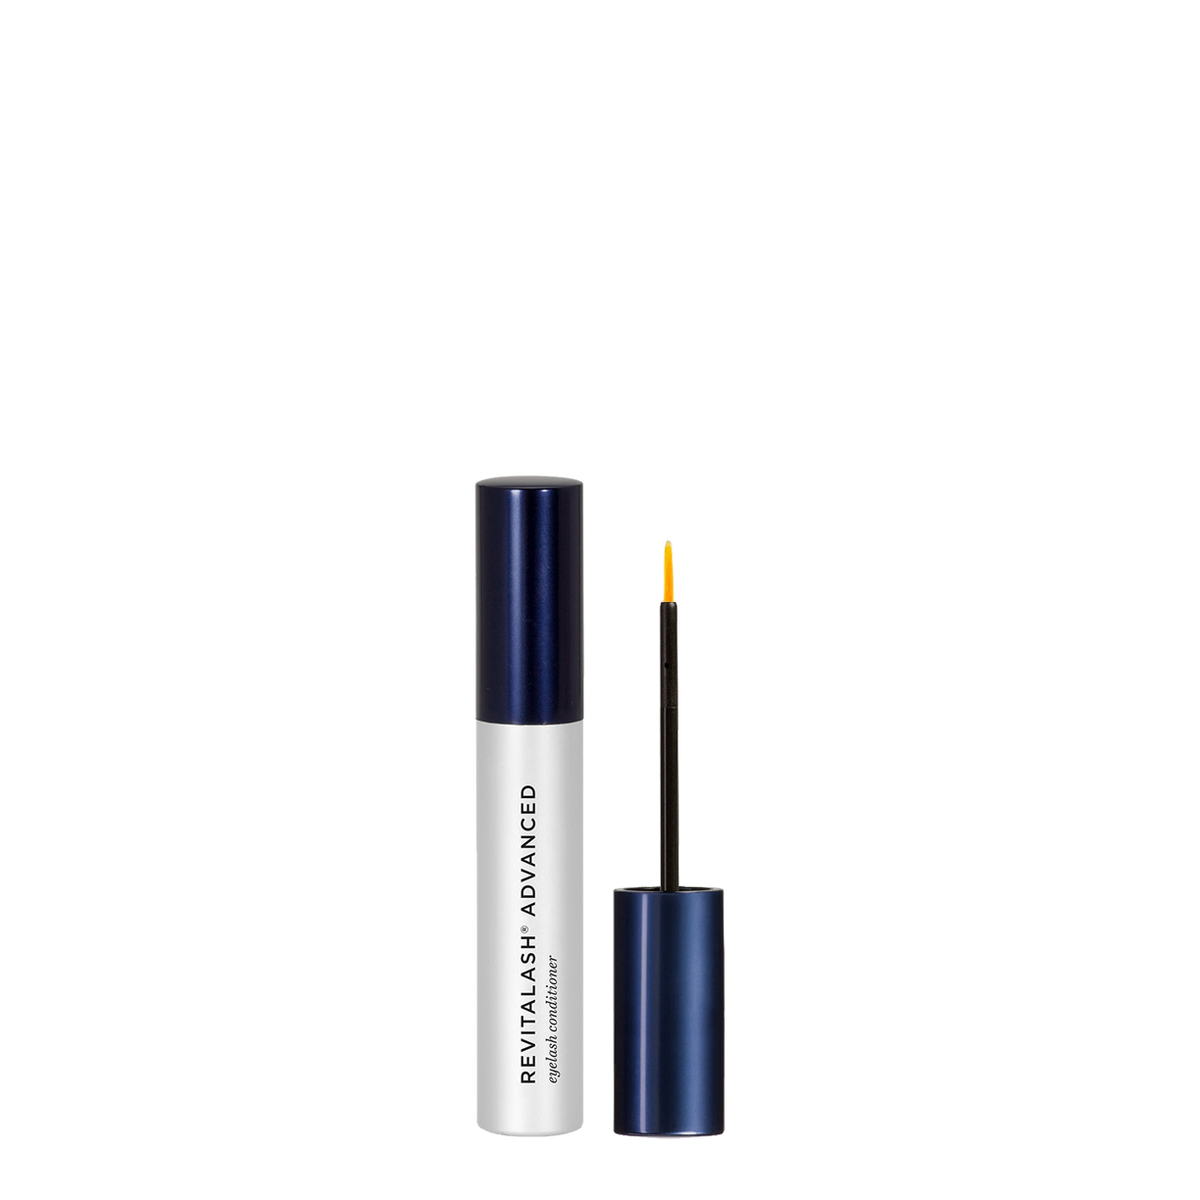 RevitaLash® Advanced Eyelash Conditioner Exclusive Trial Size 1ml